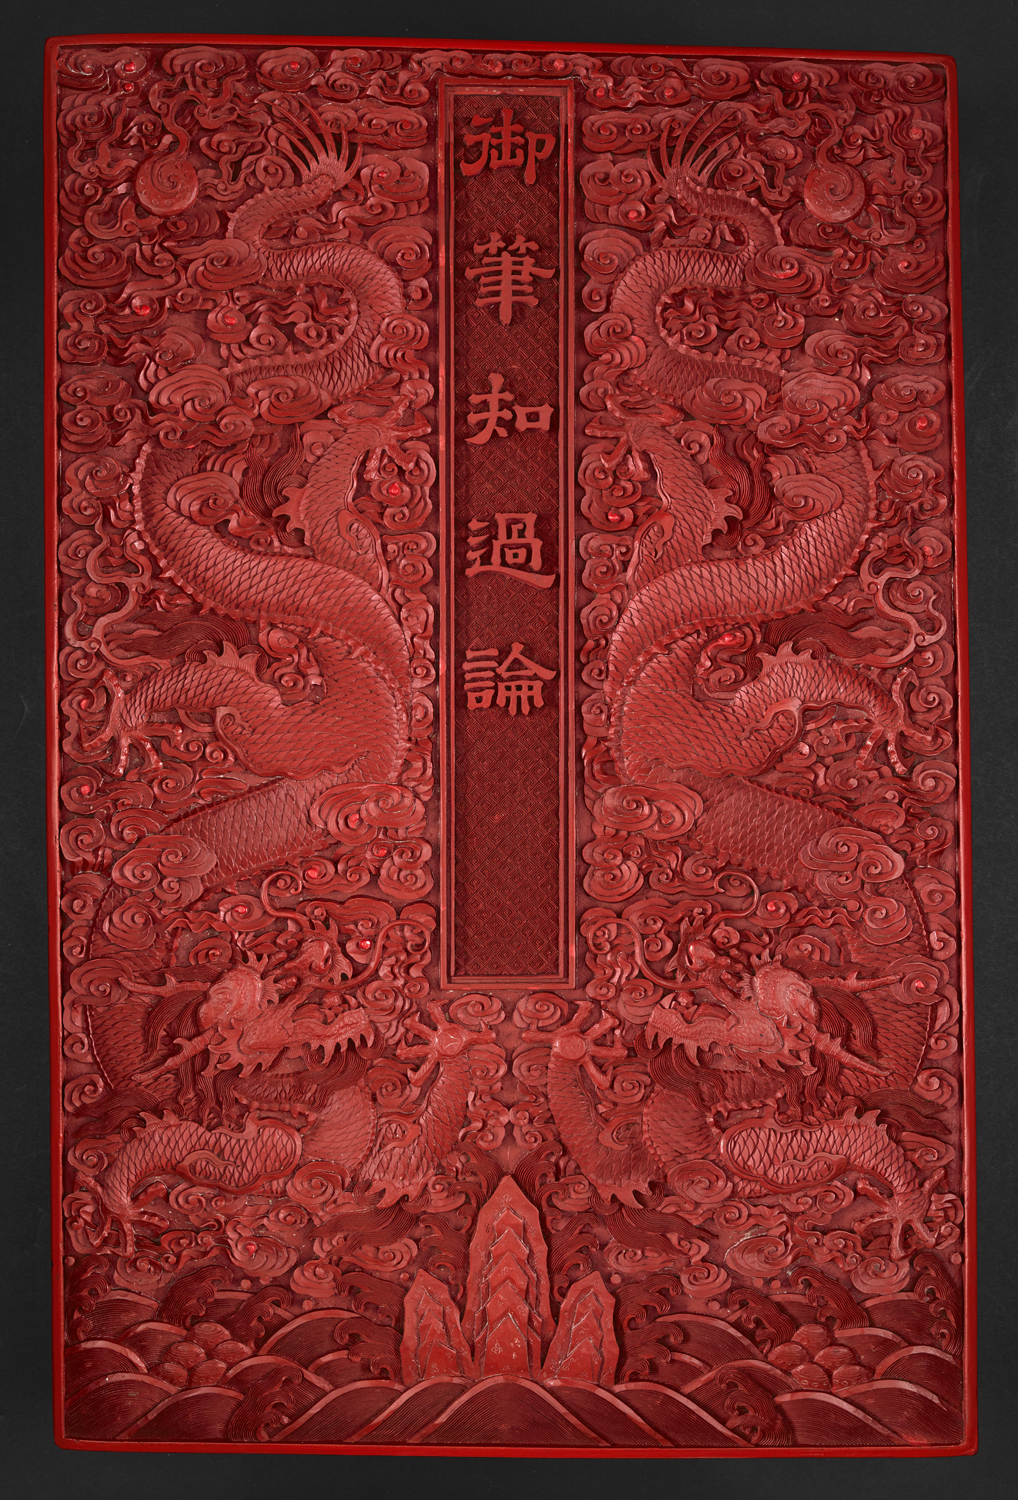 Red lacquer case, China, 18th century. It contained a manuscript by the Qianlong Emperor (Qing dynasty).